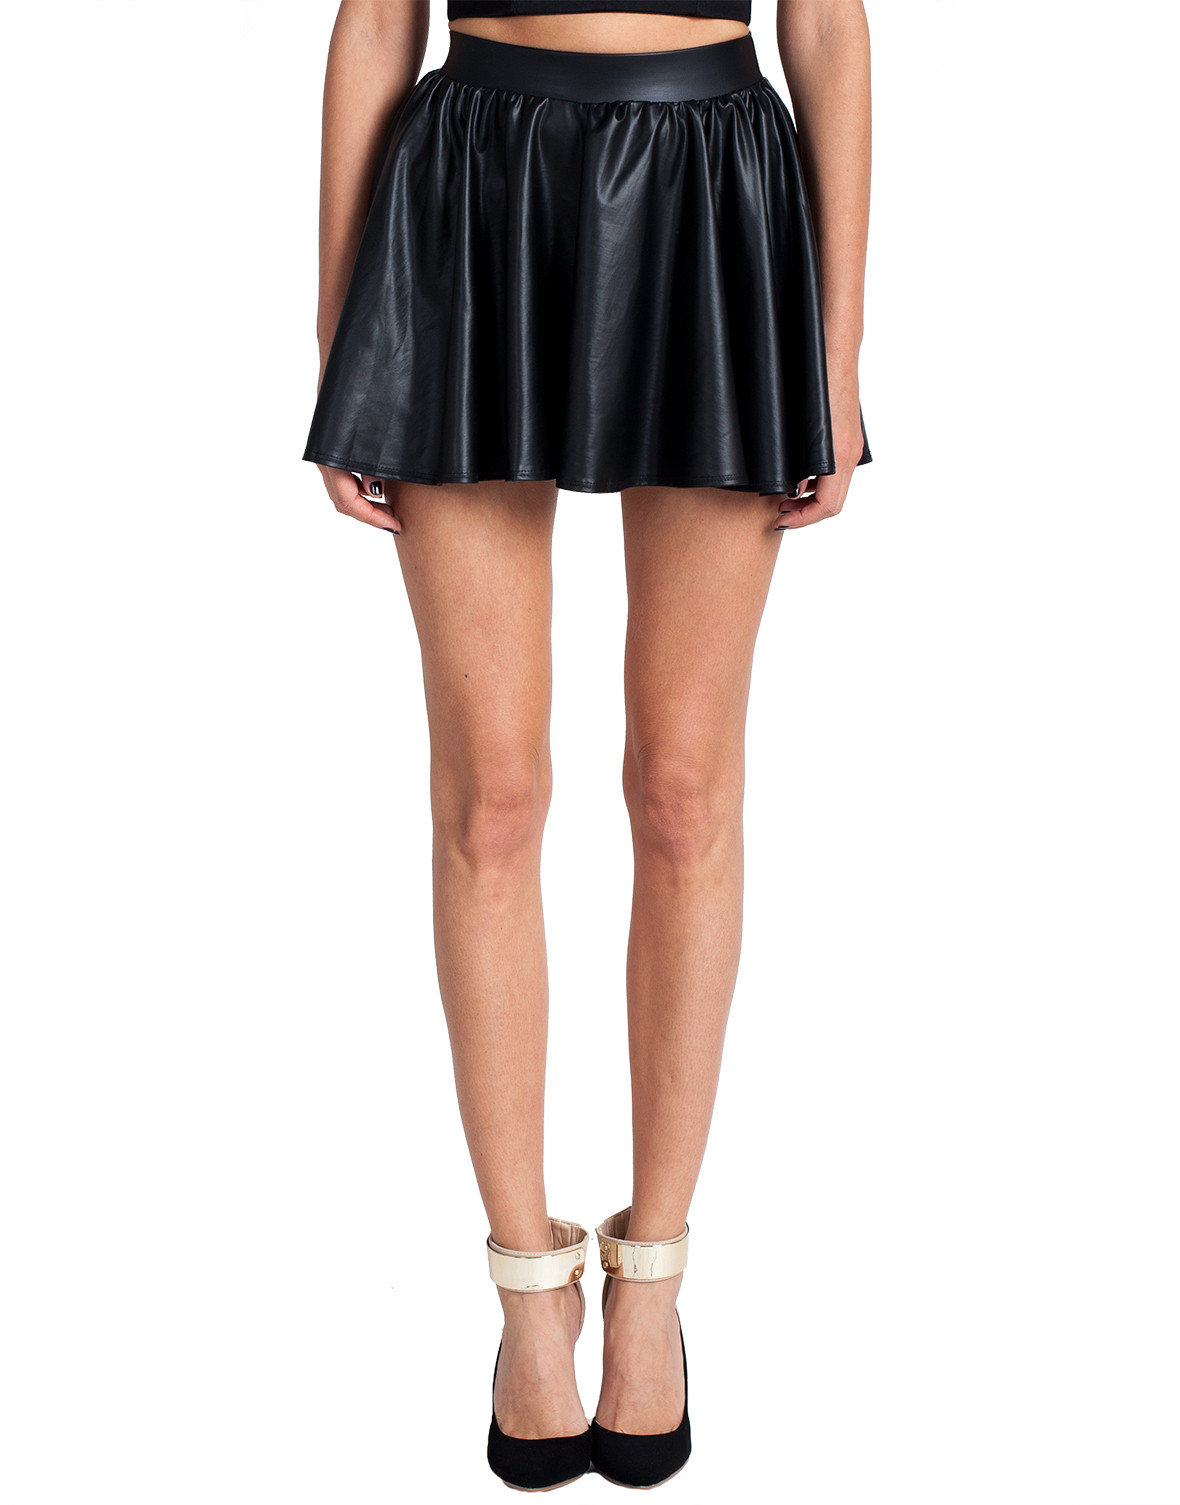 leather mini skater skirt black from 2020ave